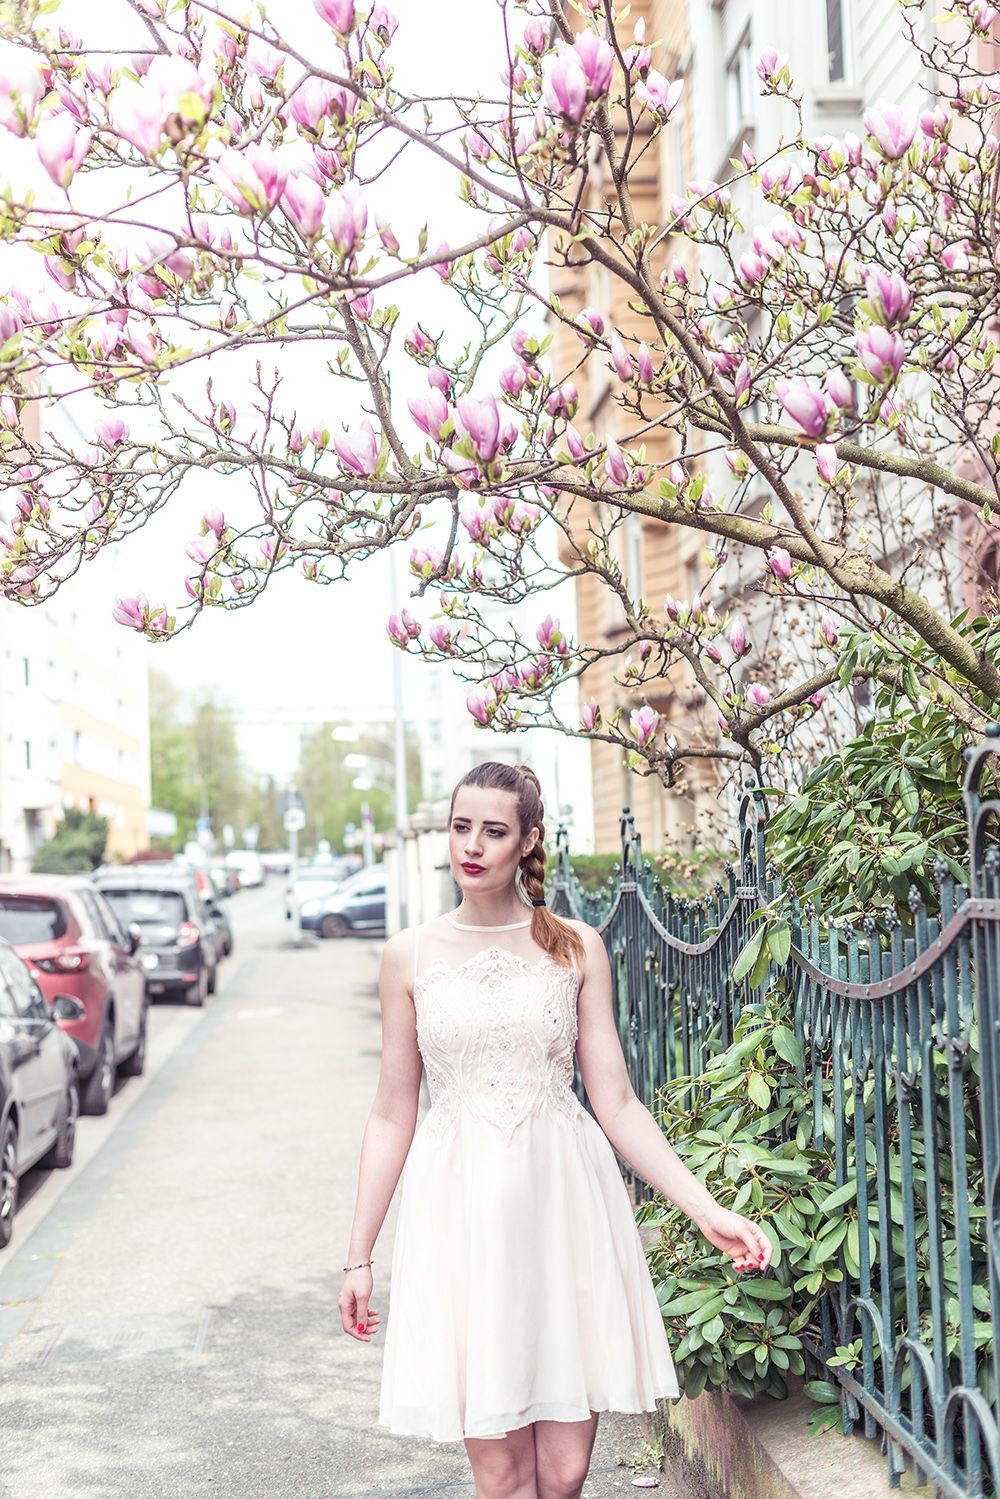 OUTFIT: MAGNOLIA - NUDE CHIFFON DRESS  andysparkles